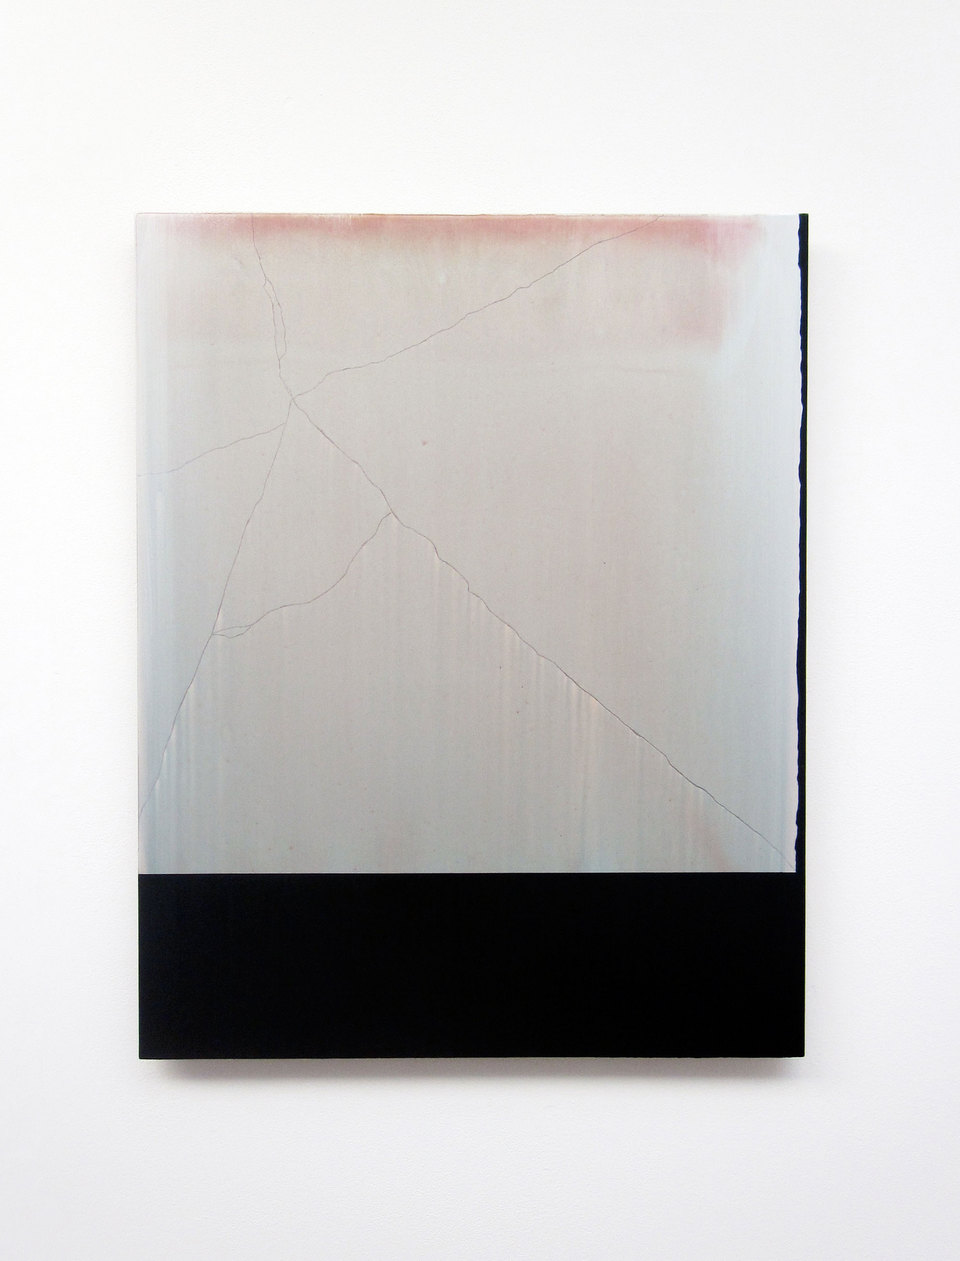 Andy Jackson, Tablet (A View from Sydenham Avenue), 2010, Acrylic and Metallic Acrylic on Board, (h.750mm x w.595mm), Cell Project Space